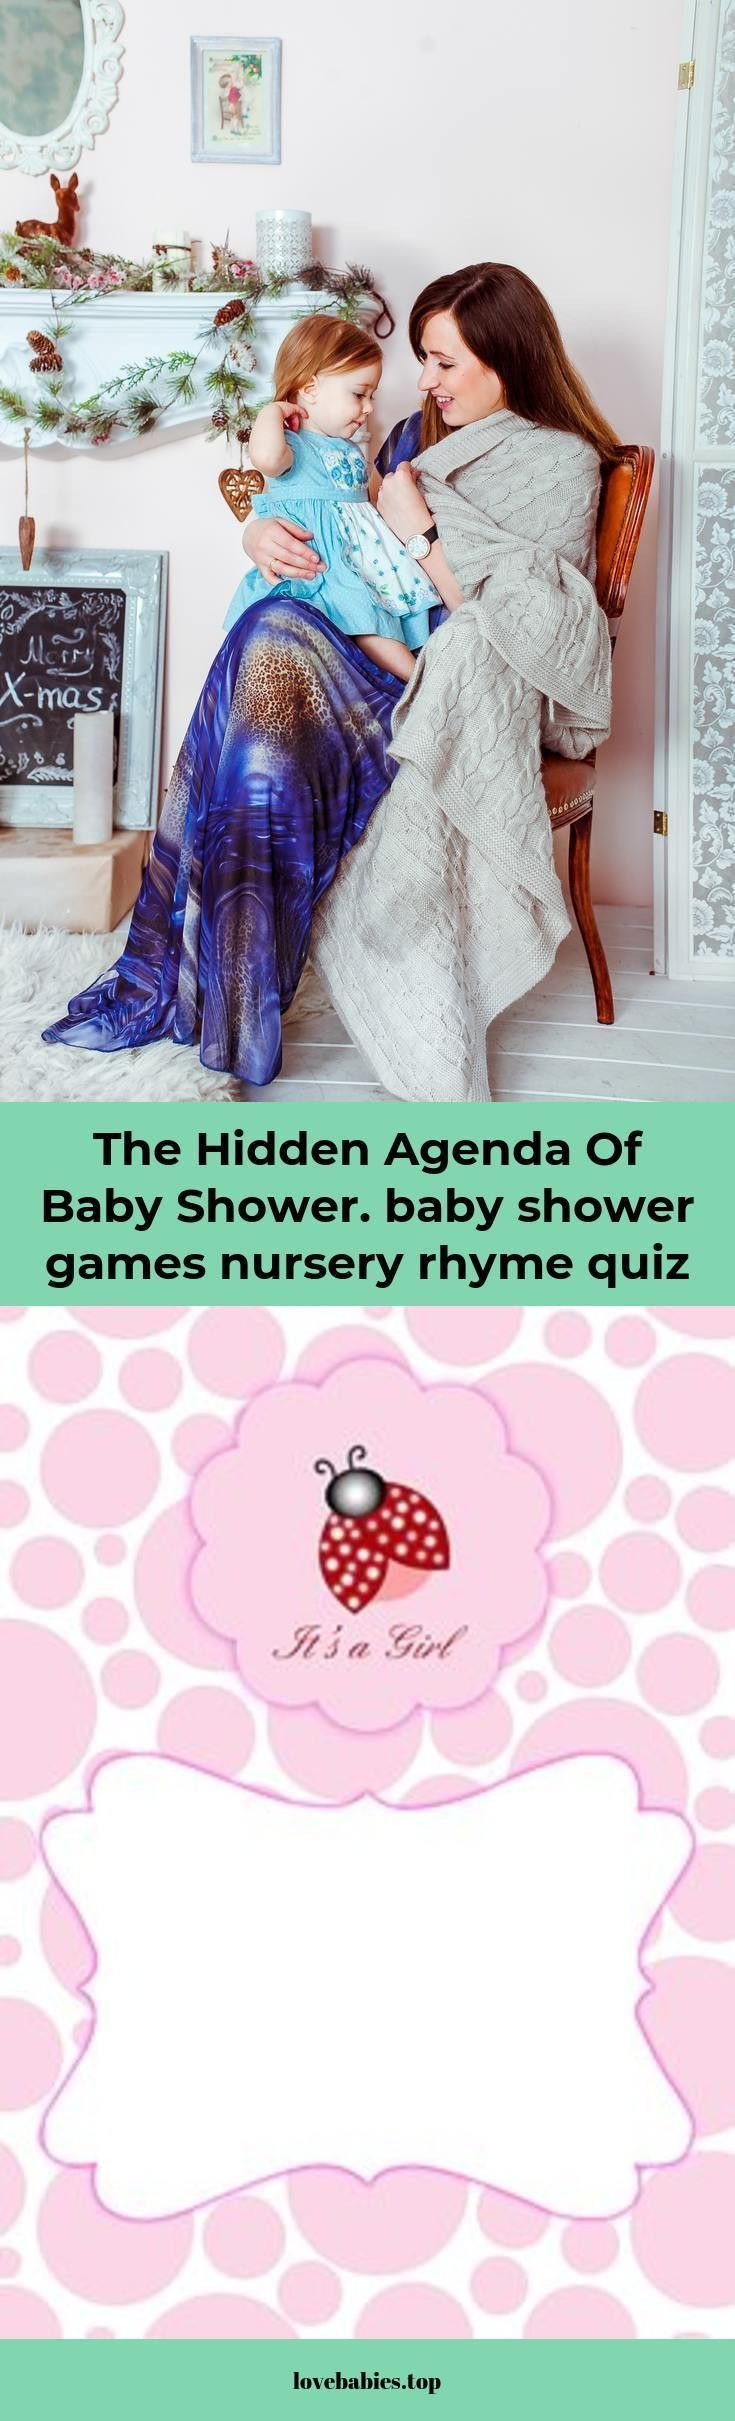 a4255aefedeb Visit the webpage to see more onThe Hidden Agenda Of Baby Shower ...